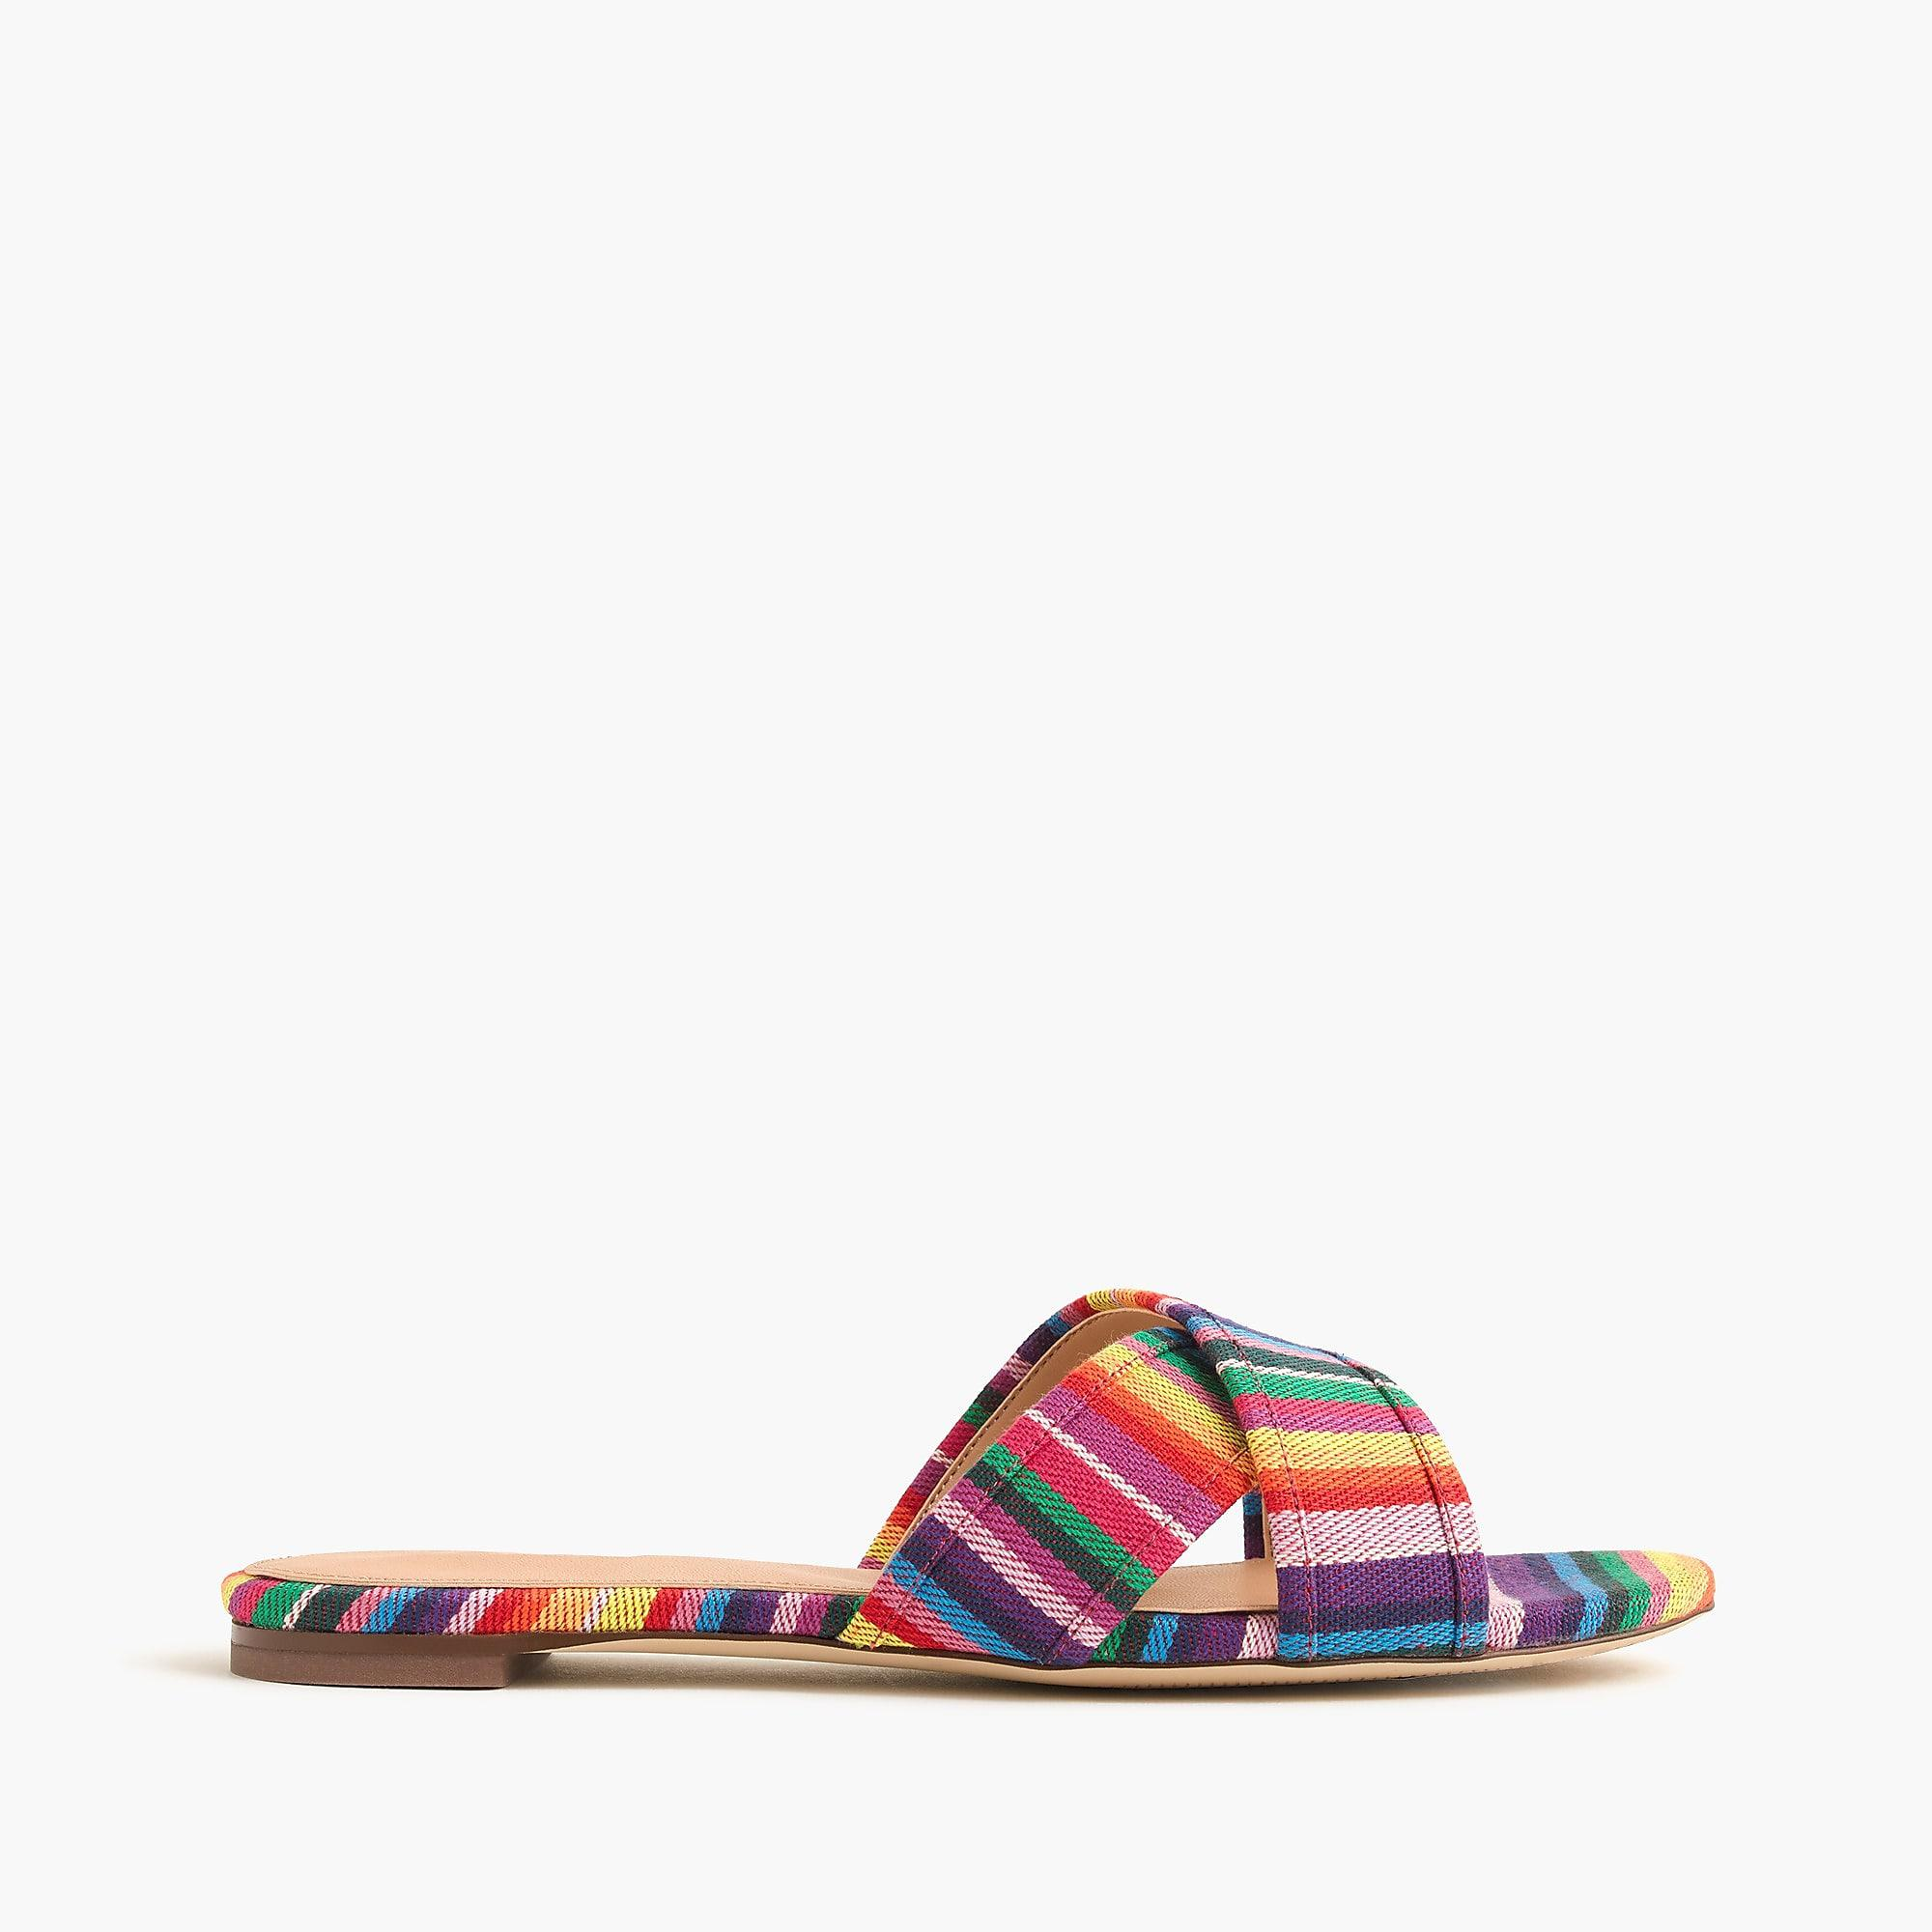 8baa699f181 ... Cora Crisscross Sandals - Lyst. View fullscreen